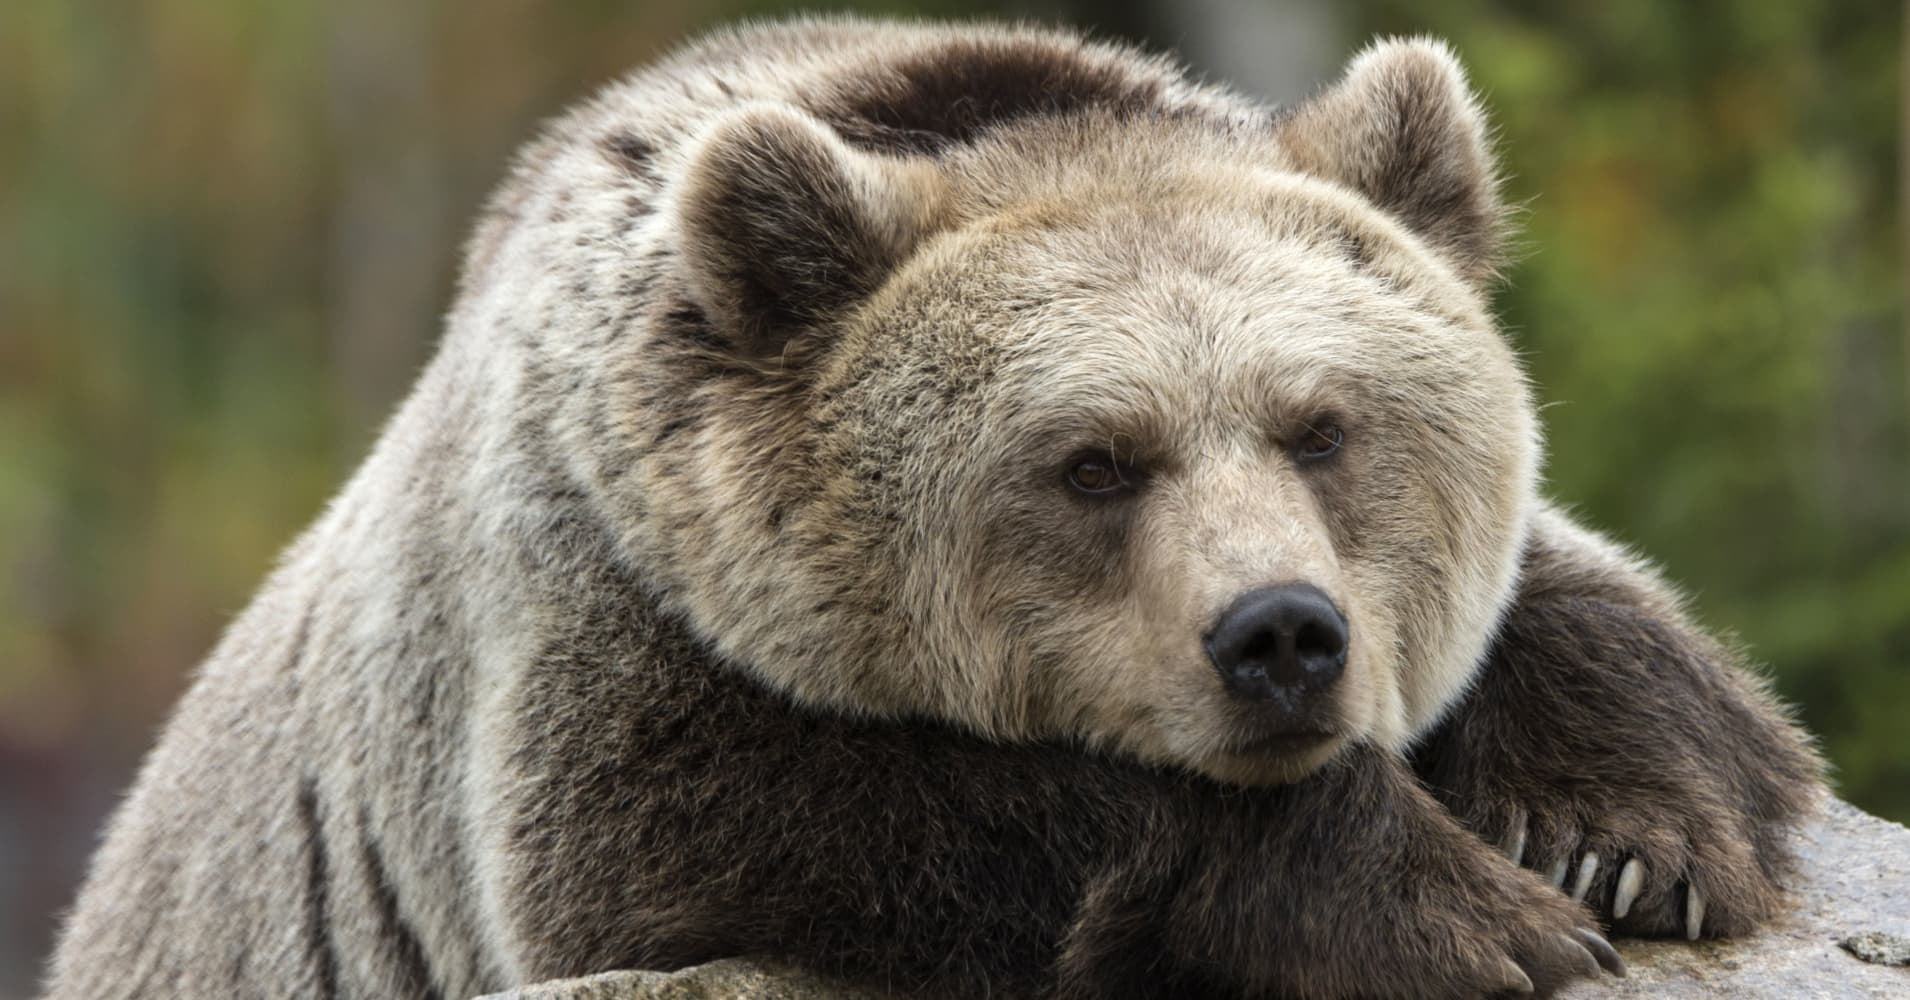 Don't panic: Here's your bear market survival guide